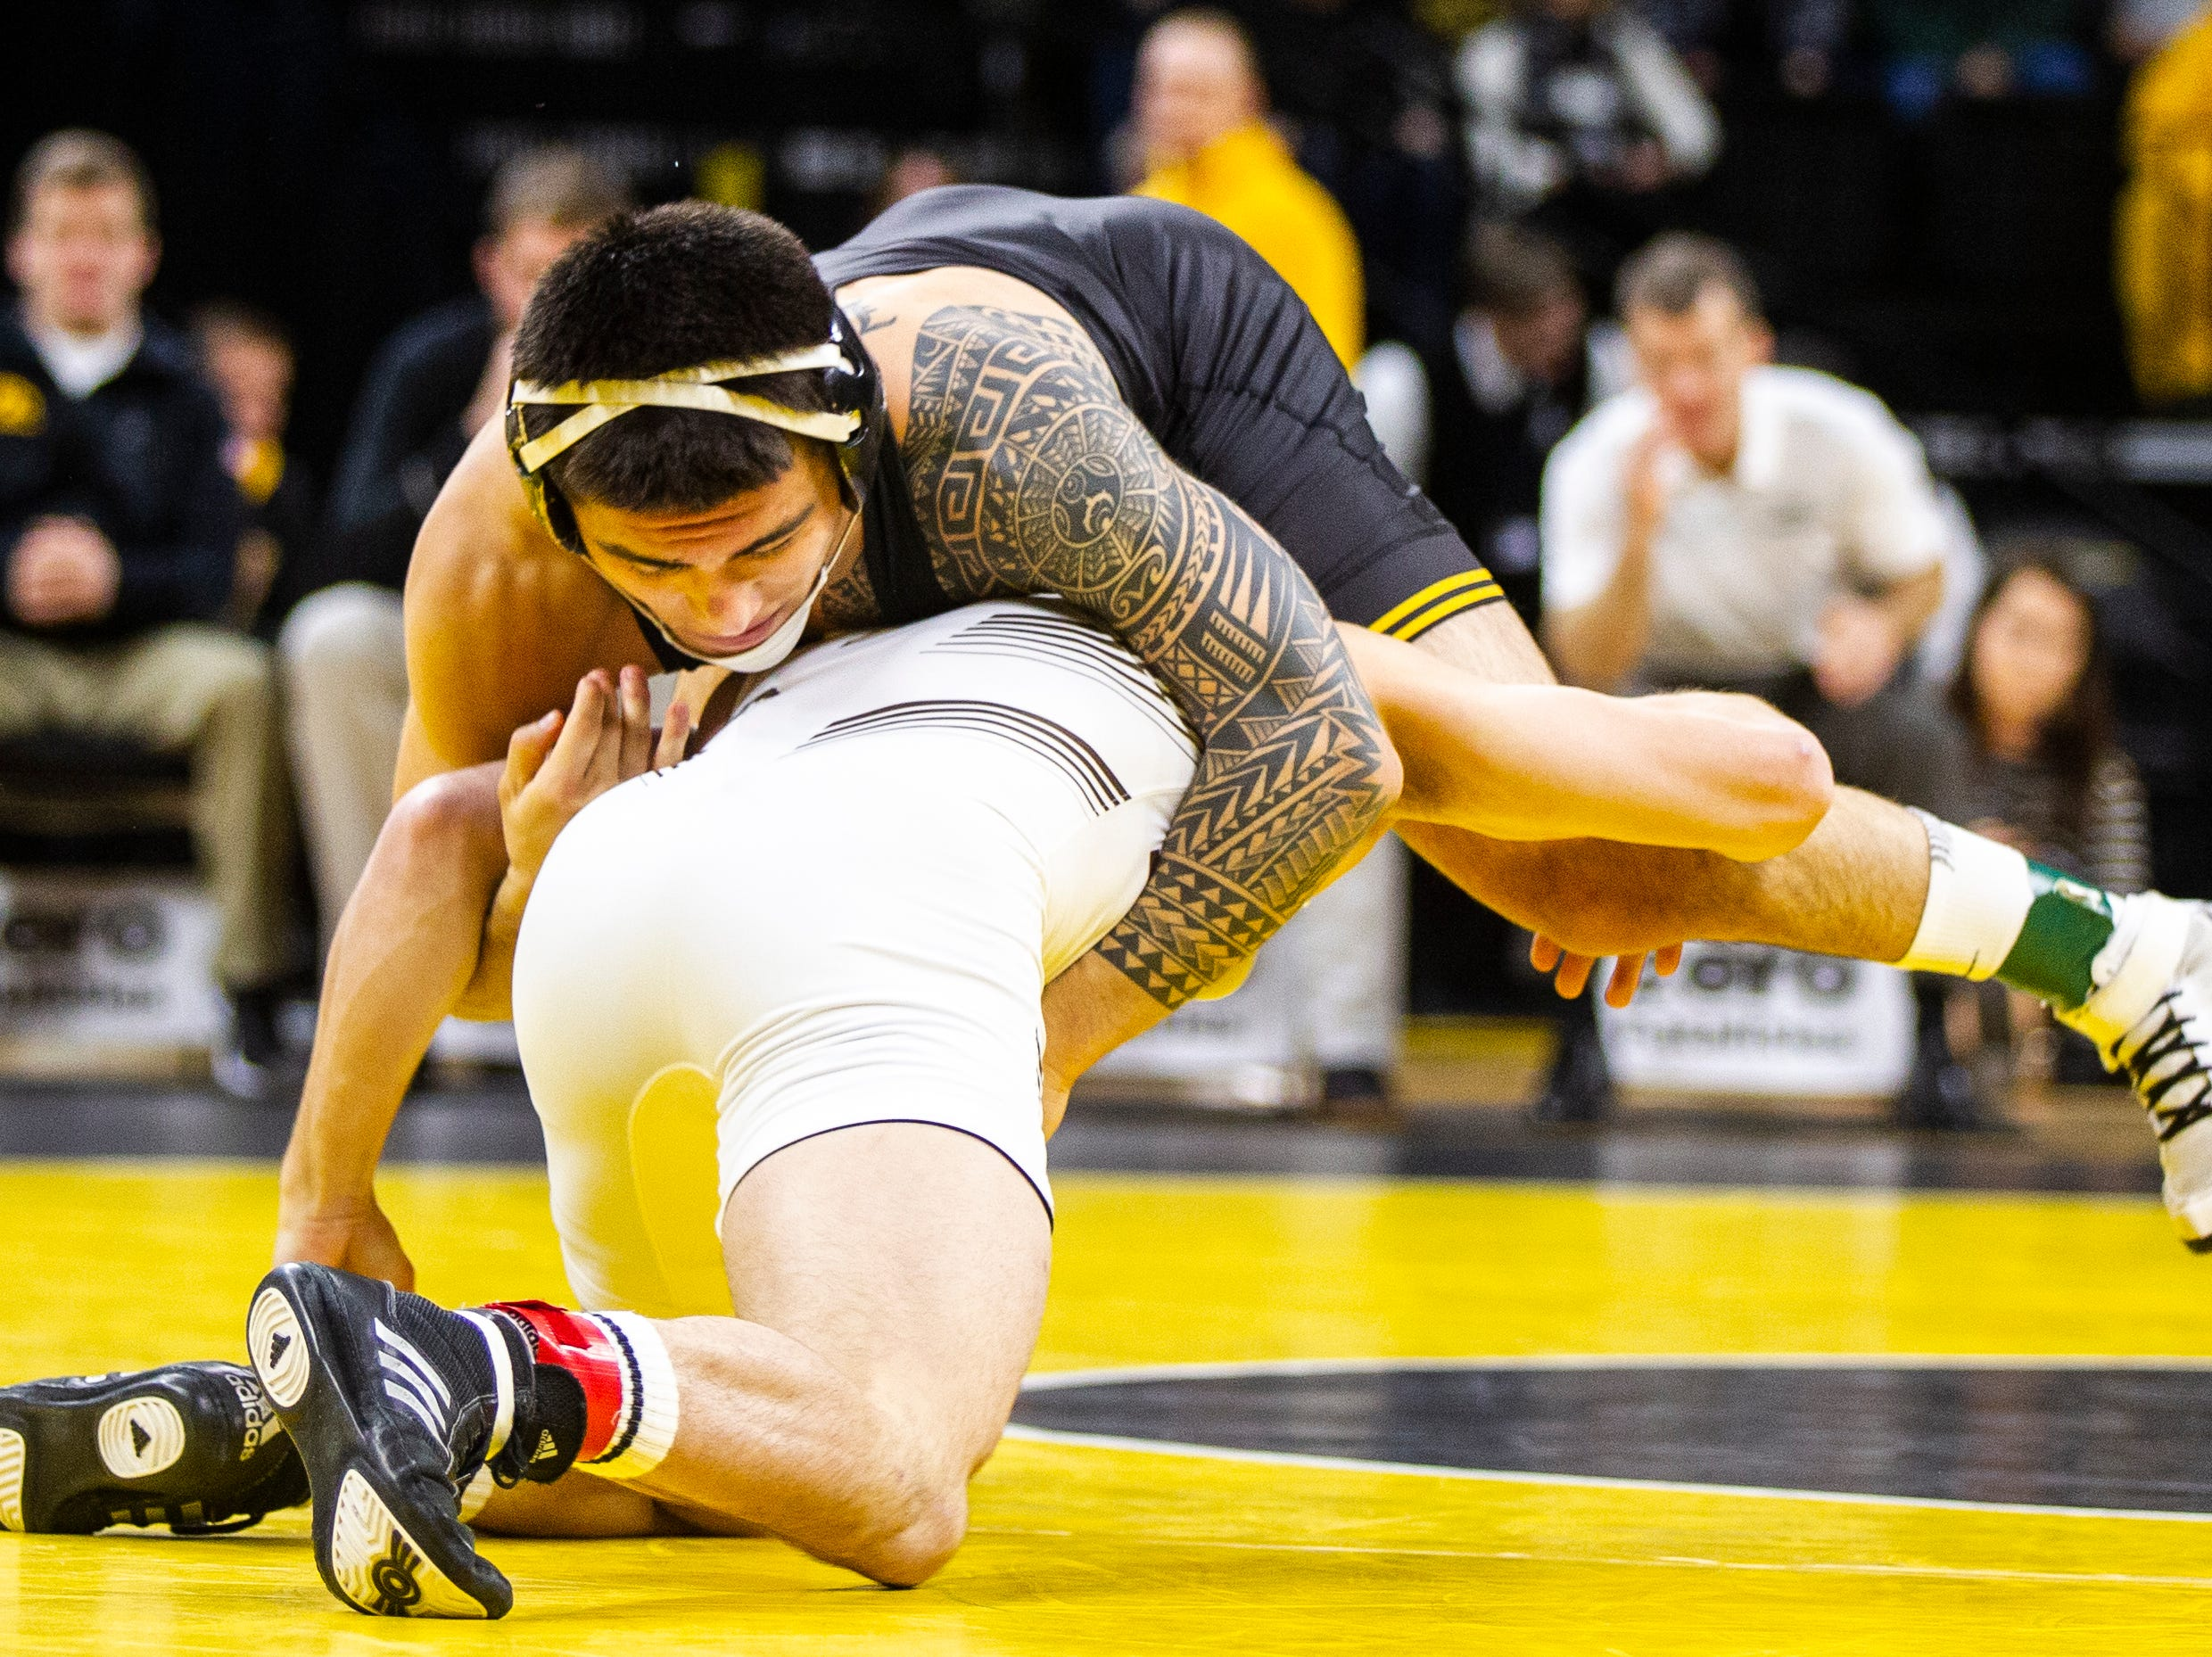 Iowa's Pat Lugo, top, wrestles Lehigh's Jimmy Hoffman at 149 during a NCAA wrestling dual on Saturday, Dec. 8, 2018, at Carver-Hawkeye Arena in Iowa City.